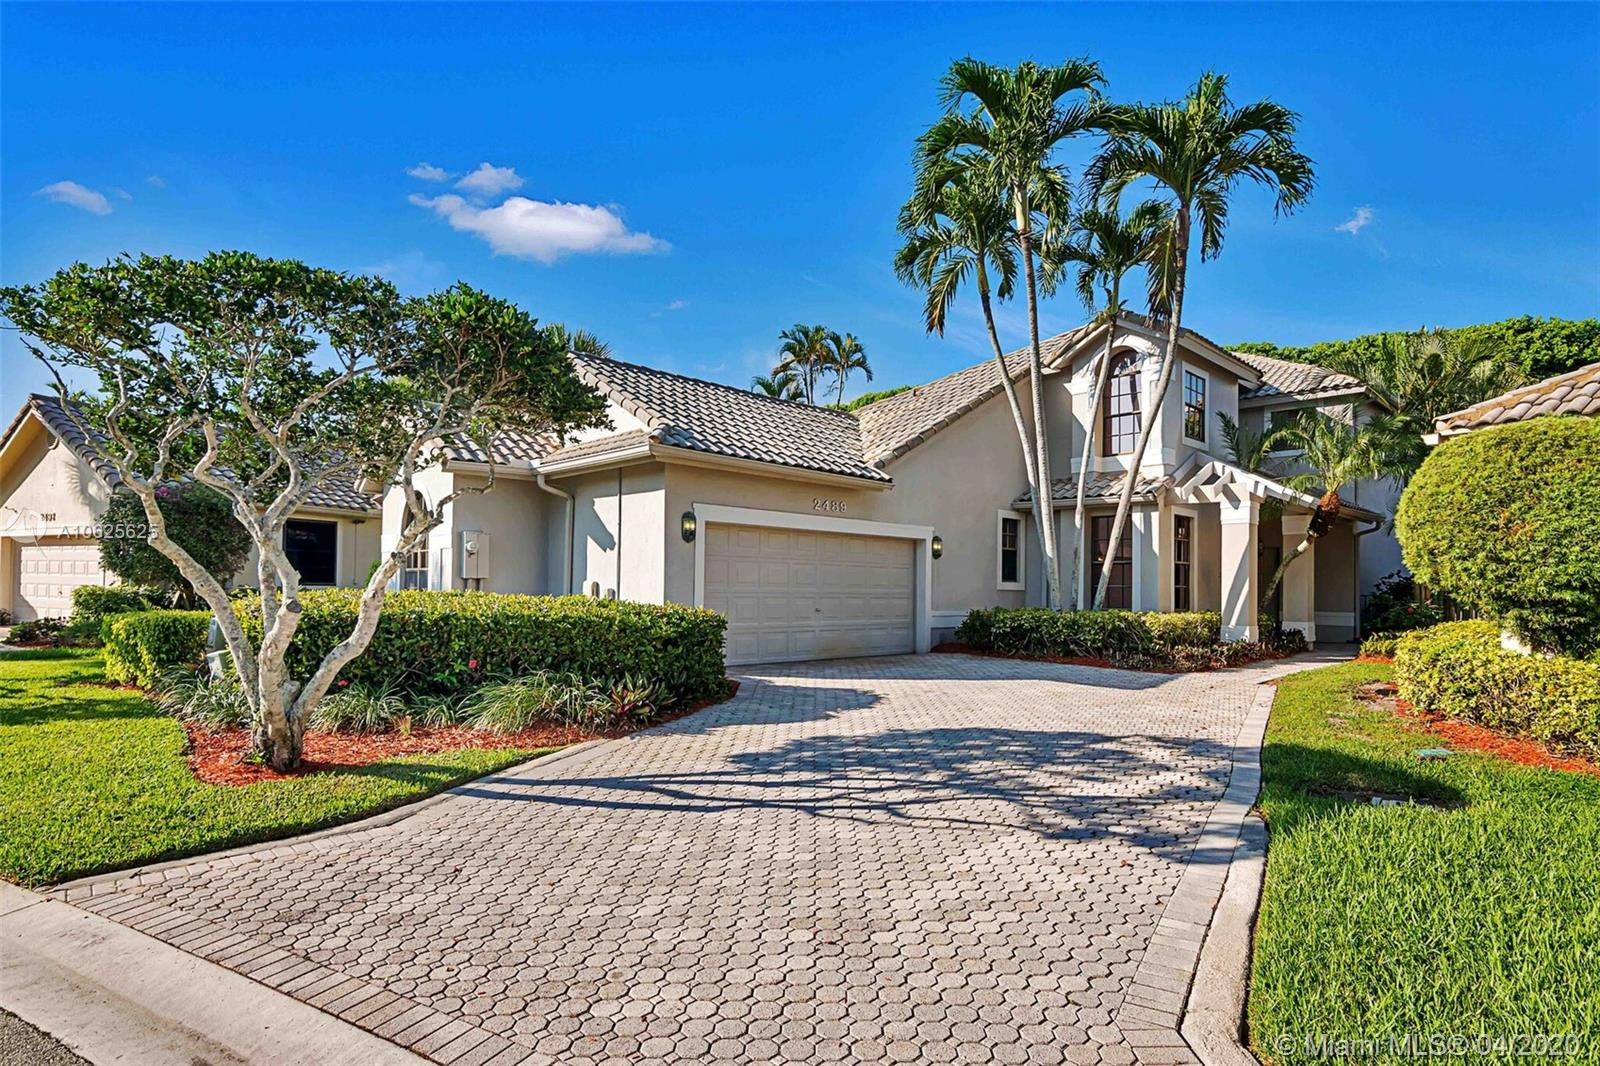 Property for sale at 2489 NW 64th St, Boca Raton,  Florida 33496